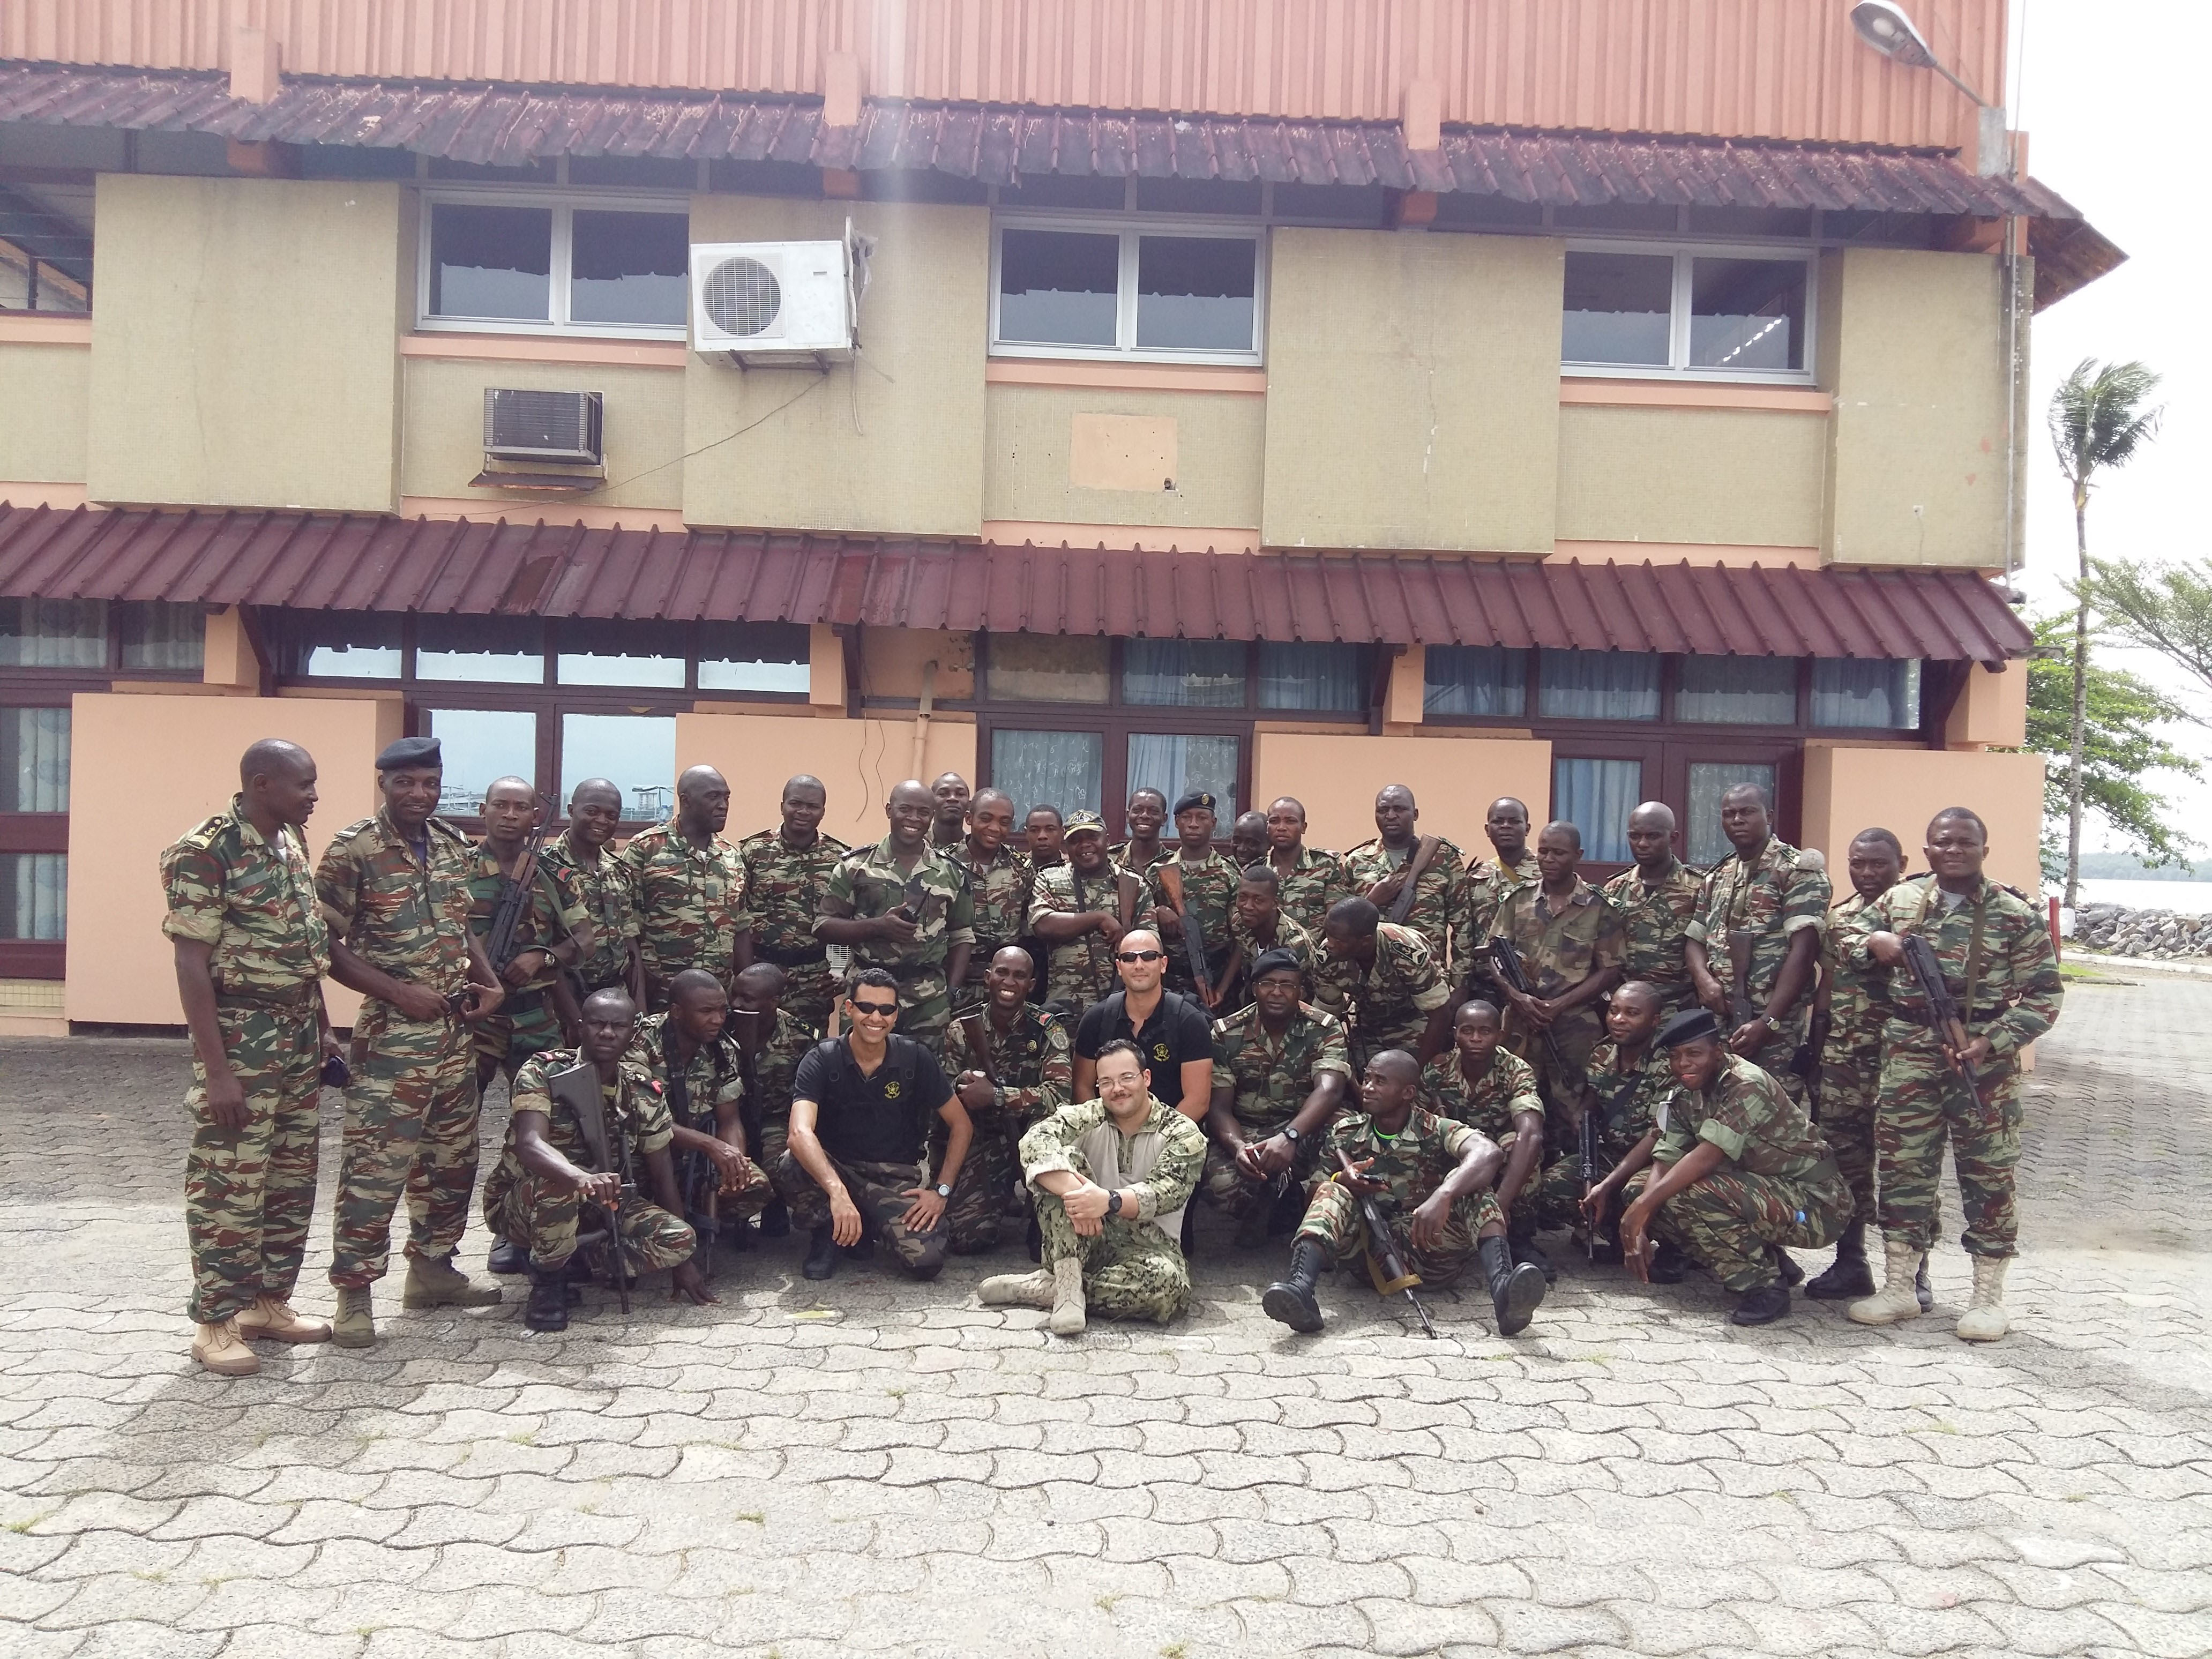 160317-A-RU135-001 DOUALA, Cameroon (March 17, 2016) Members of the Cameroonian navy pose with their U.S. and Moroccan counterparts in Douala, Cameroon, after a day of training together on medical scenarios and maritime interdiction operations during exercise Obangame/Saharan Express 2016. Obangame/Saharan Express, one of three African regional express series exercises facilitated by U.S. Naval Forces Europe-Africa/U.S. 6th Fleet, seeks to increase regional cooperation, maritime domain awareness, information sharing practices and improve interoperability among participating forces in order to enhance maritime security and regional economic stability. (U.S. Navy photo by Meghan Henderson/Released)